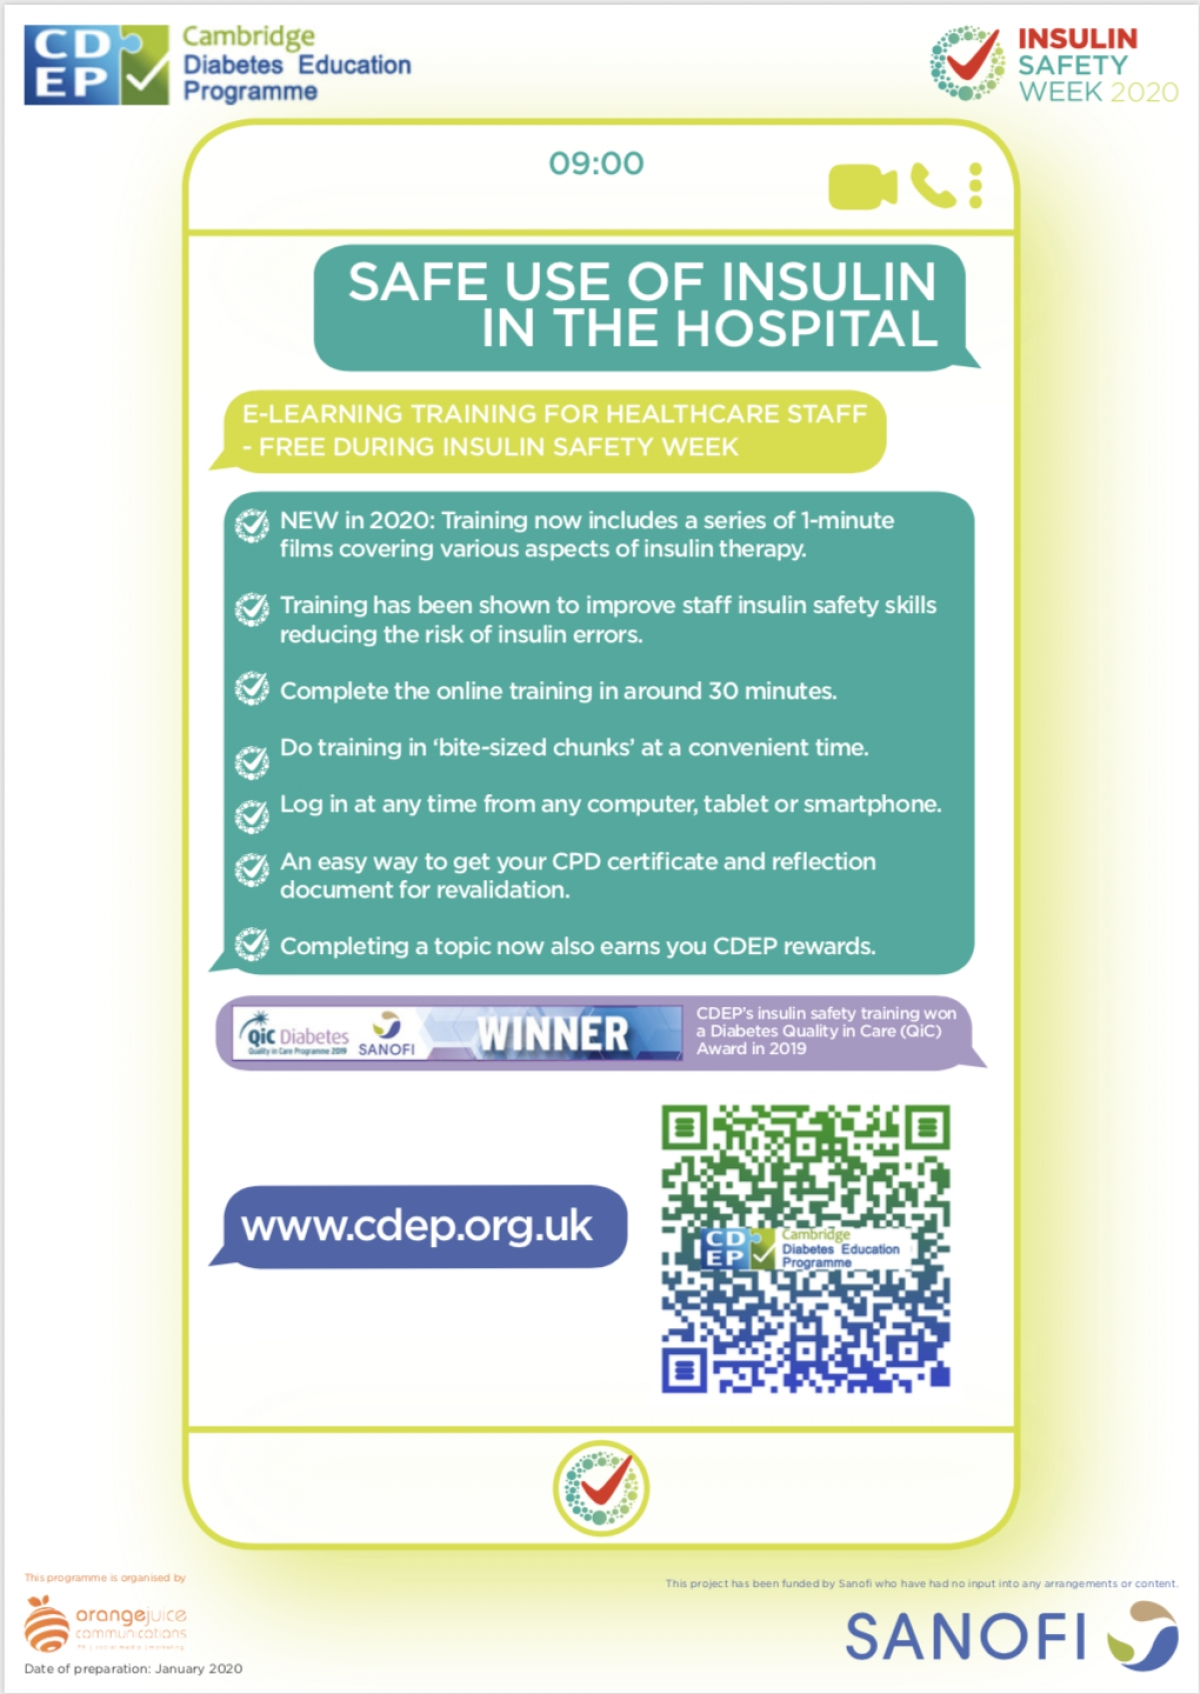 CDEP's Insulin Safety Training shortlisted for prestigous HSJ Patient Safety Awards